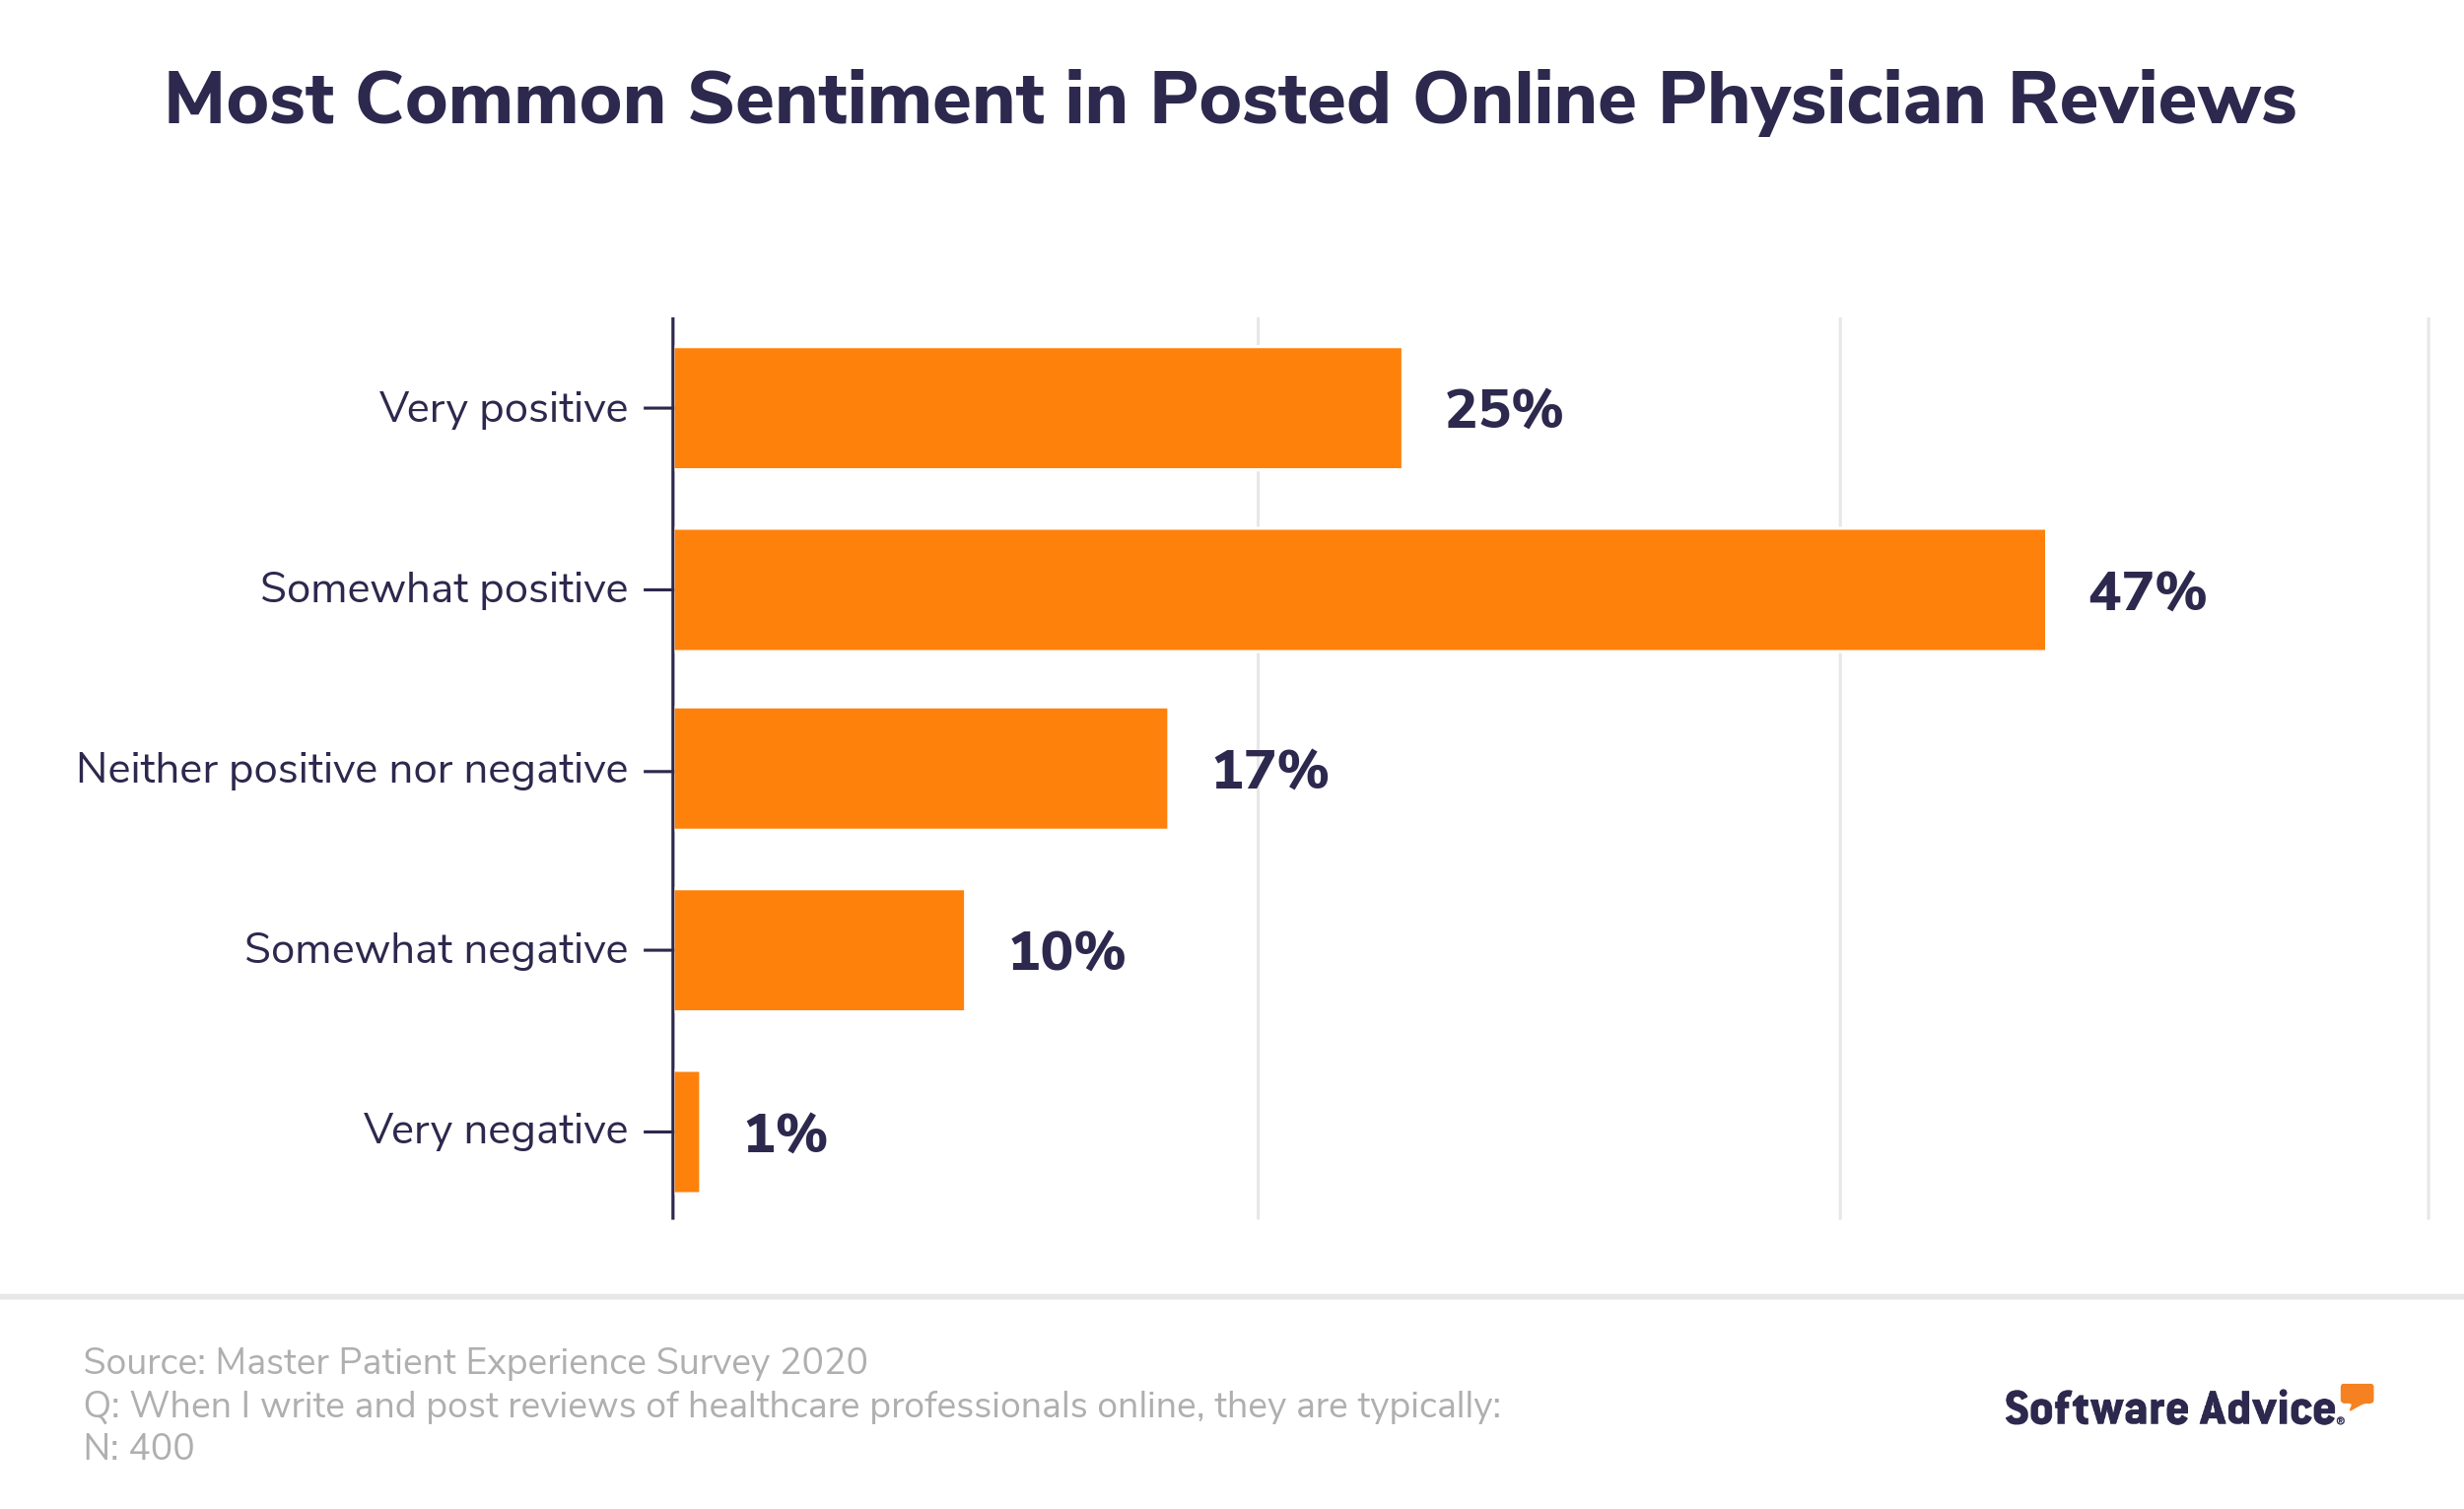 Most common sentiment in posted online physician reviews.